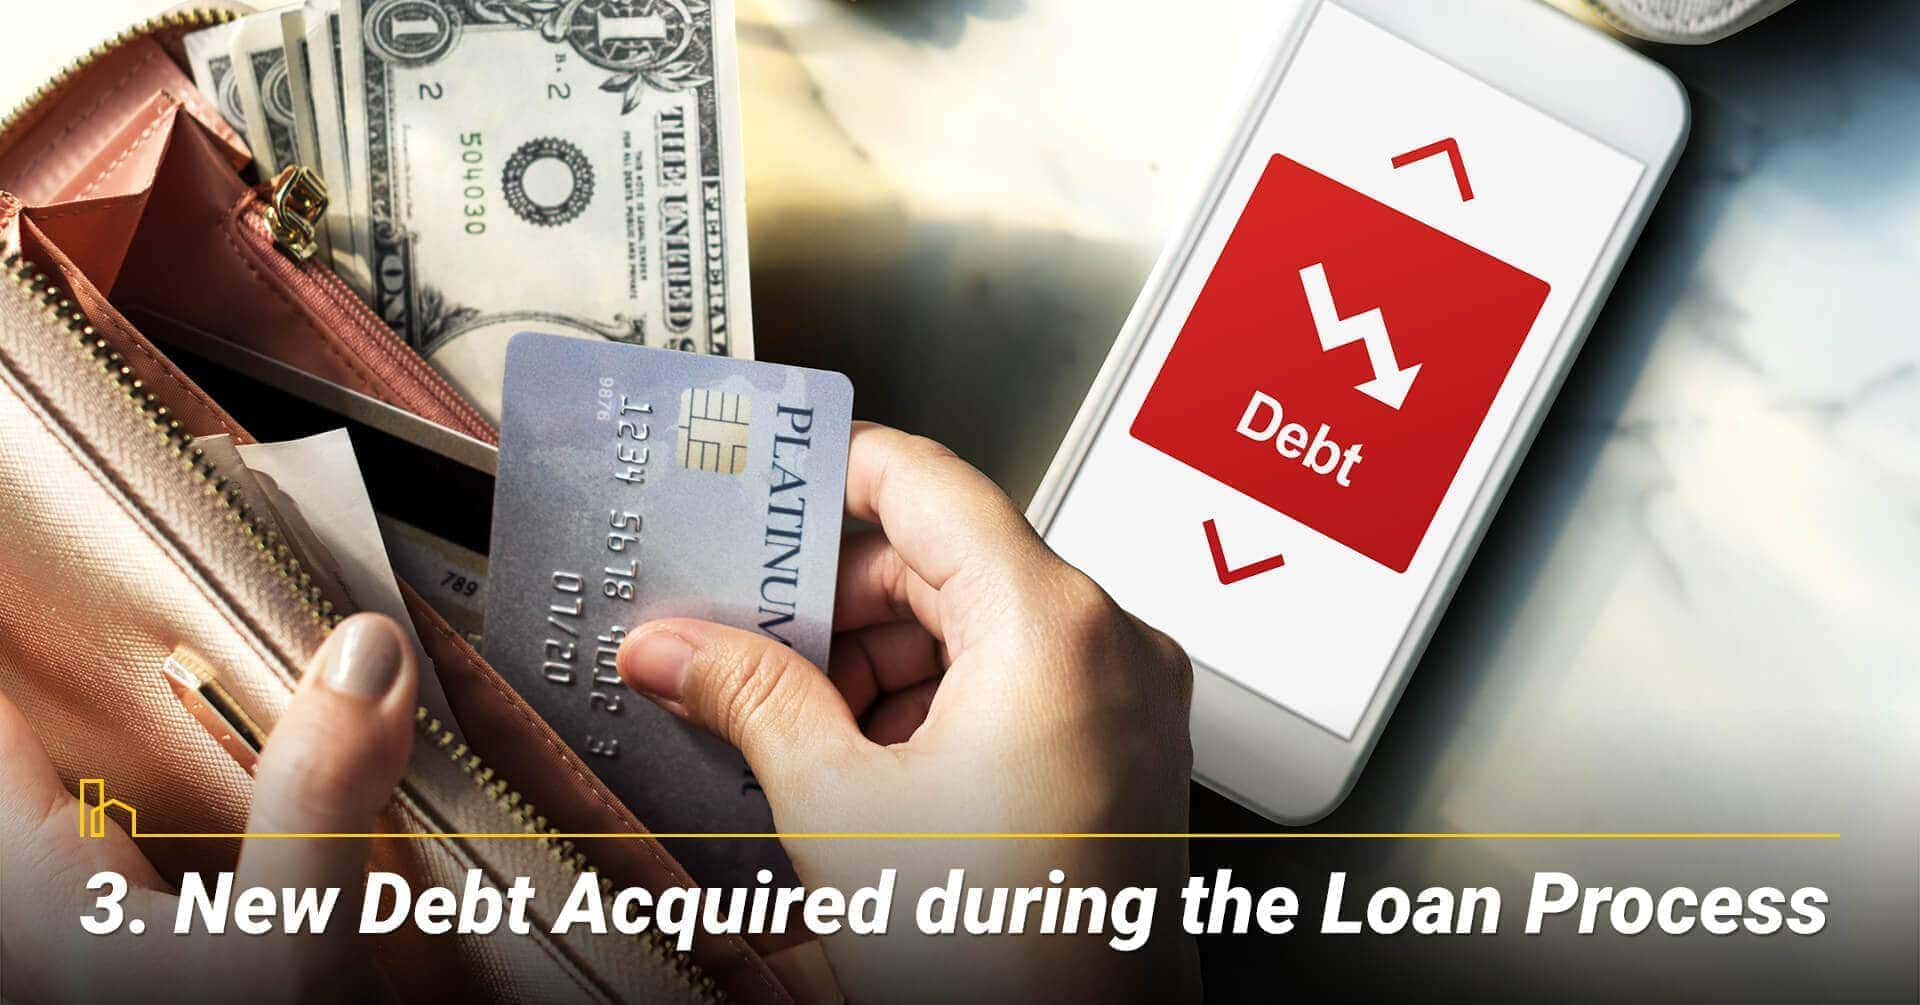 New Debt Acquired during the Loan Process, getting additional debt during the loan process